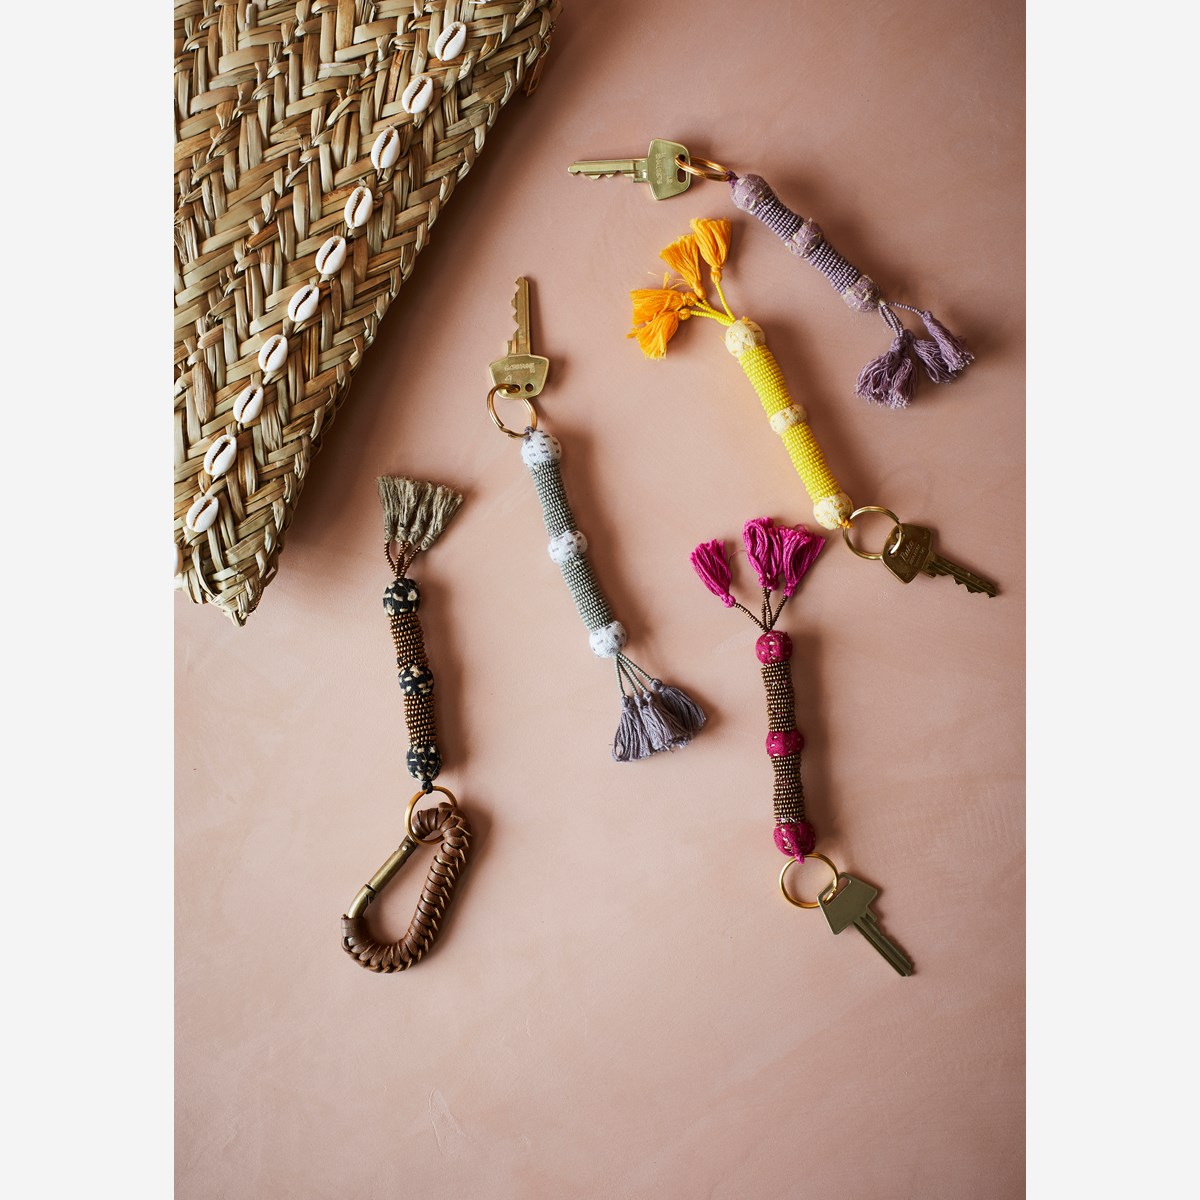 Beaded keychain w/ tassels